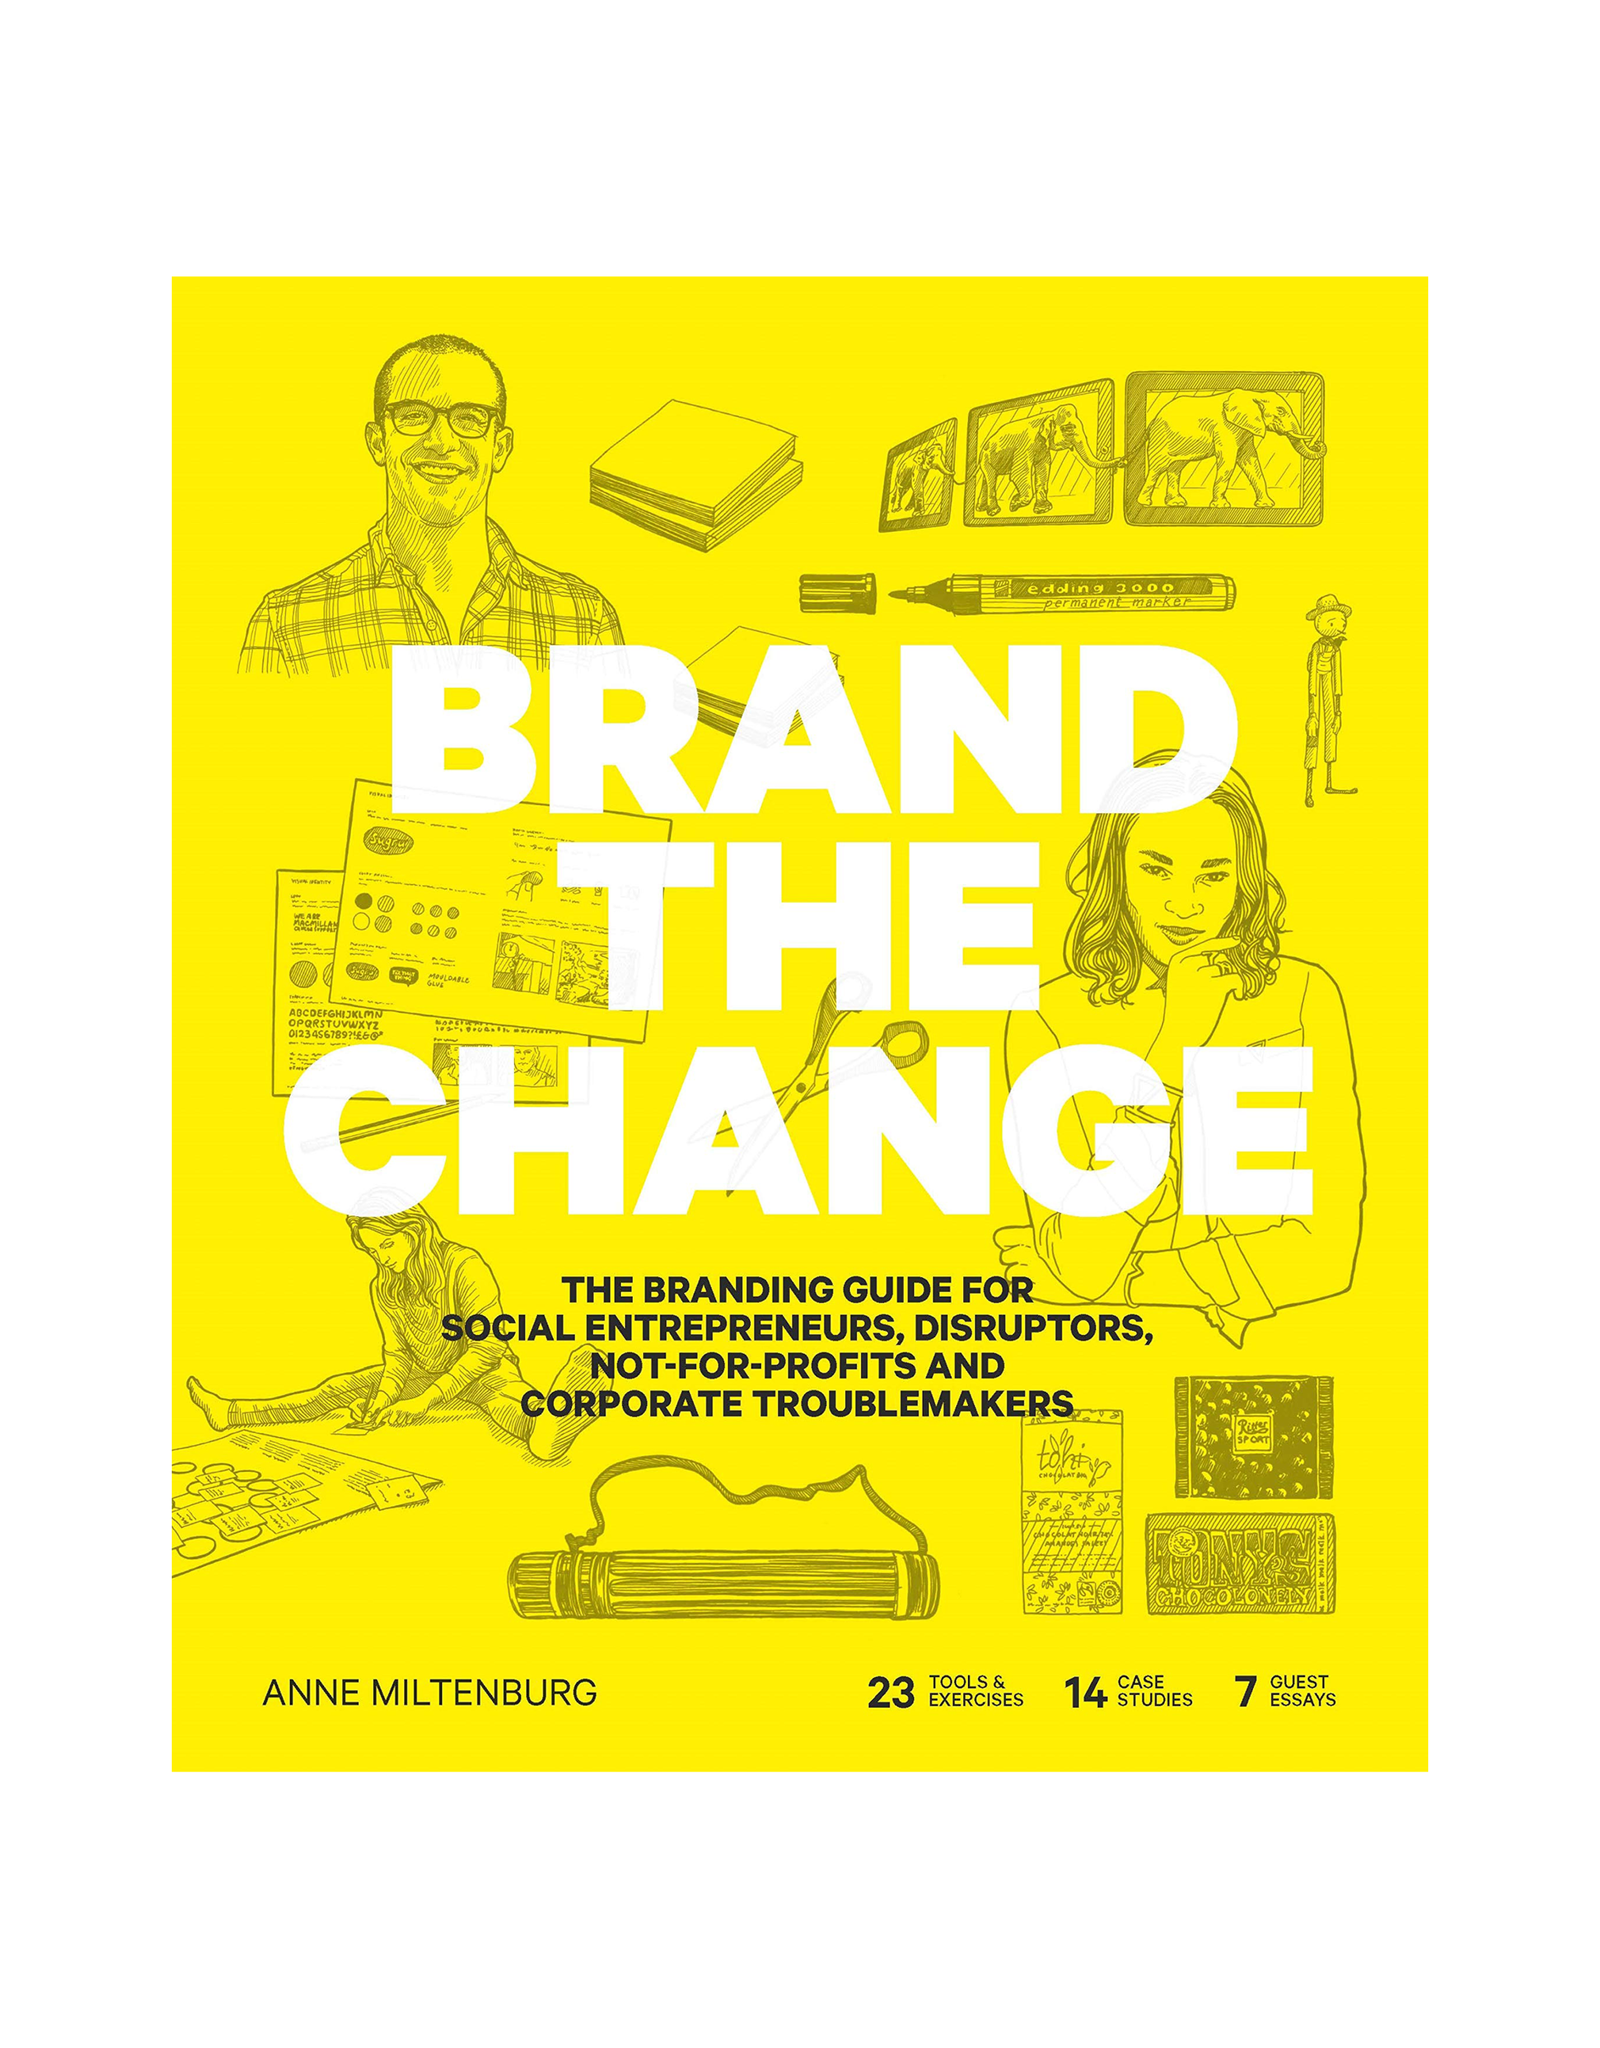 Brand the Change: The Branding Guide for Social Entrepreneurs, Disruptors, Not-For-Profits and Corporate Troublemakers